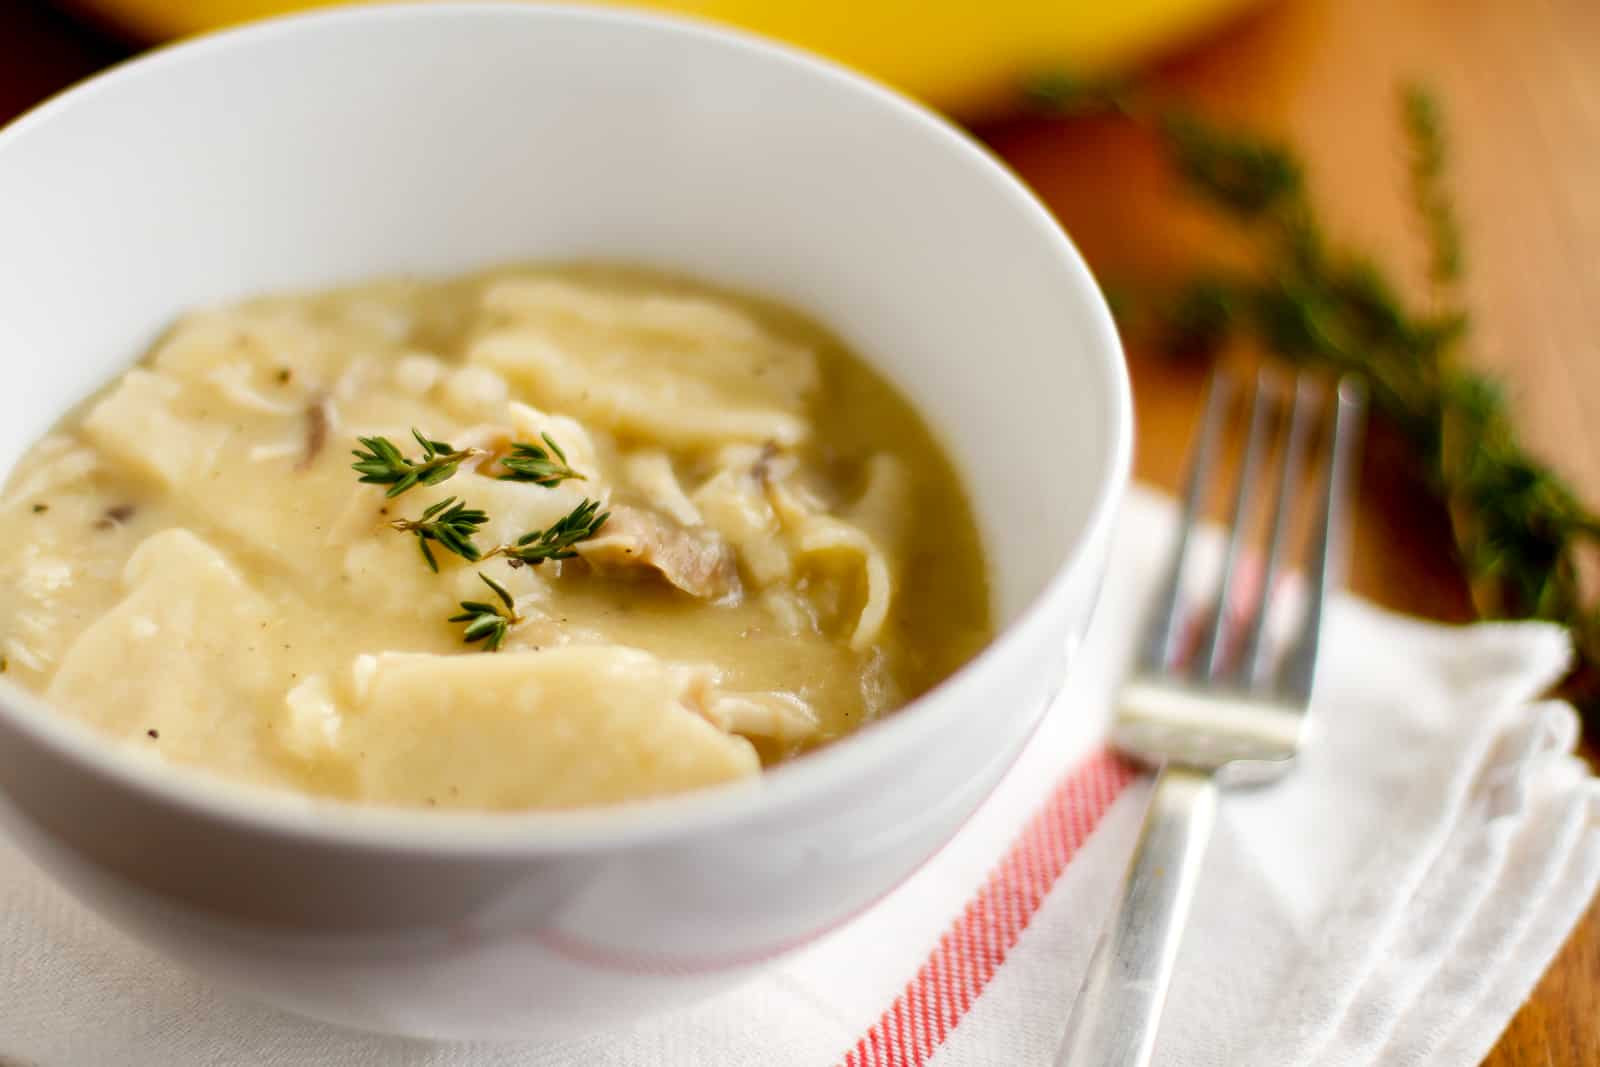 Cracker Barrel Chicken And Dumplings Recipe  Homemade Chicken and Dumplings Recipe